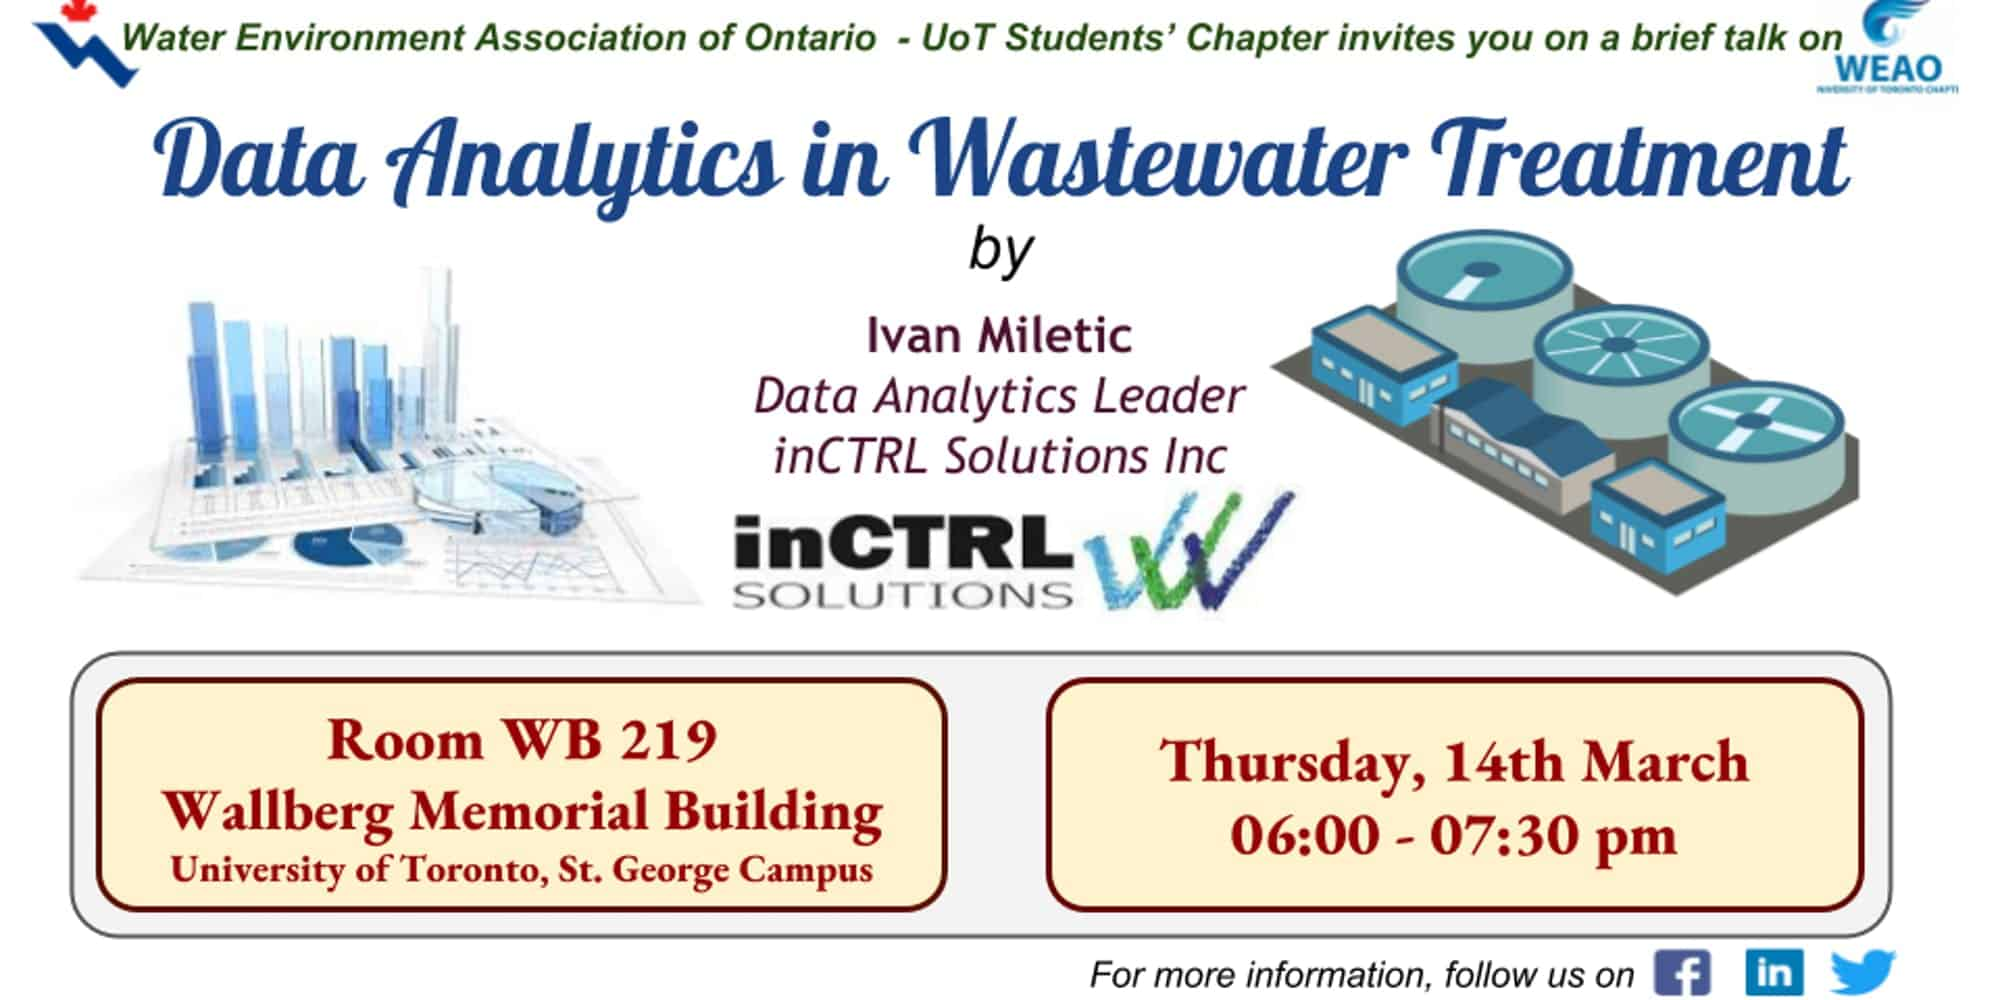 Ivan Miletic presents at WEAO U of Toronto Student Chapter